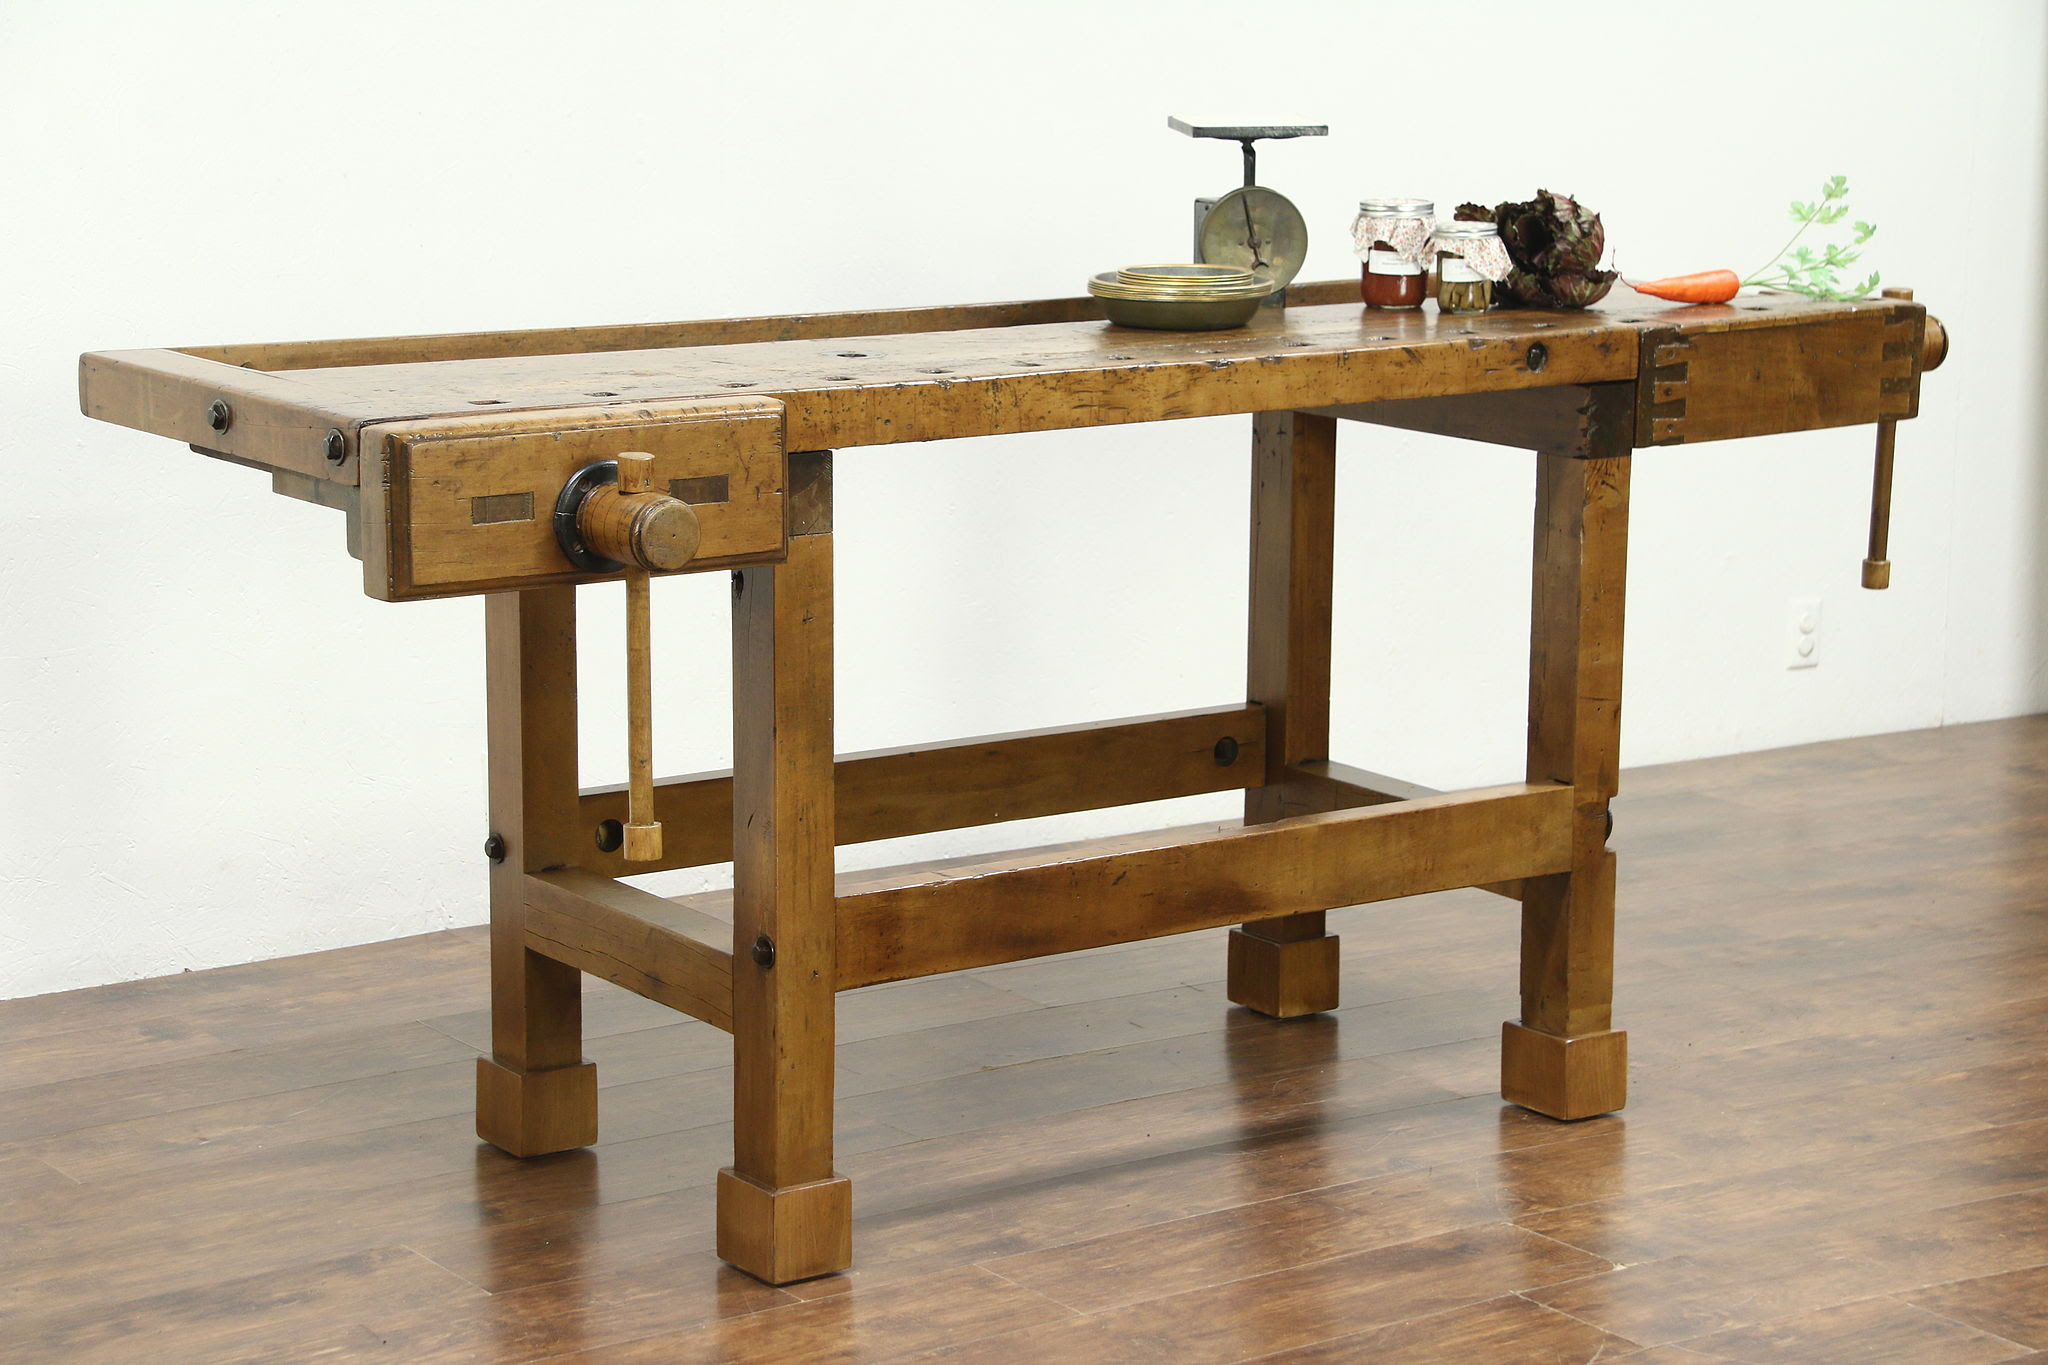 Sold Carpenter Salvage Antique Workbench Kitchen Island Or Wine Cheese Table Harp Gallery Antiques Furniture